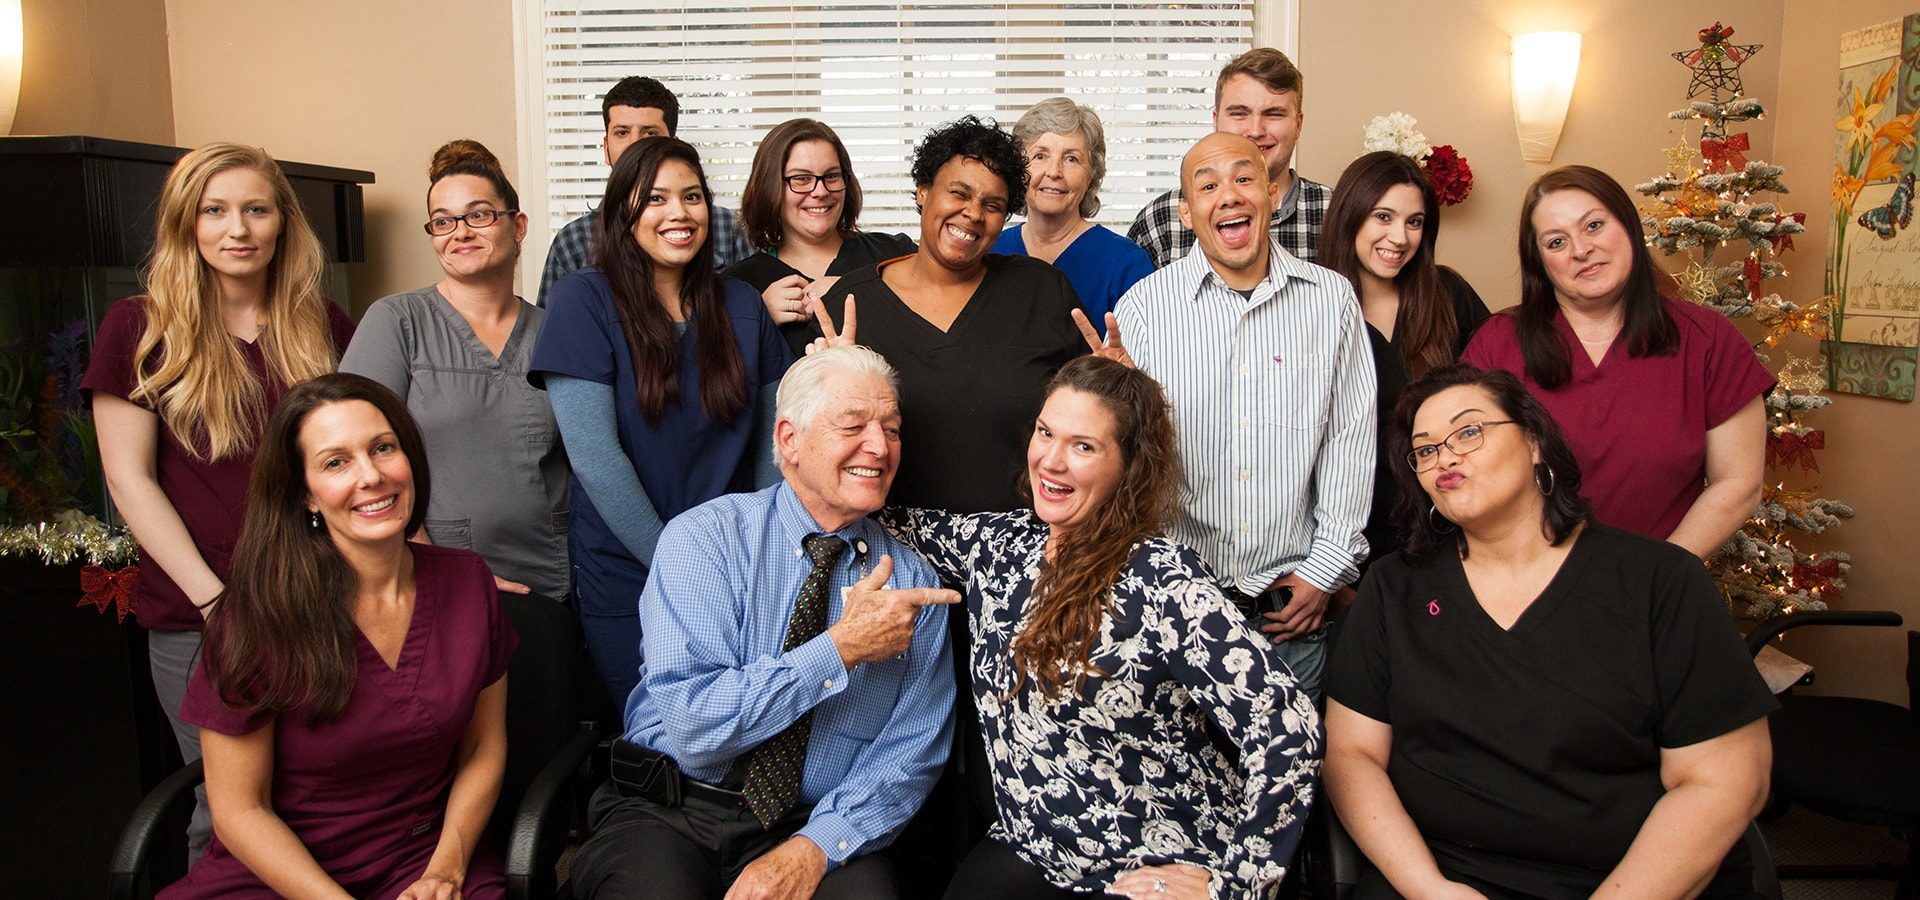 Concord Addiction Medicine Physician - Our fun team keeps things light